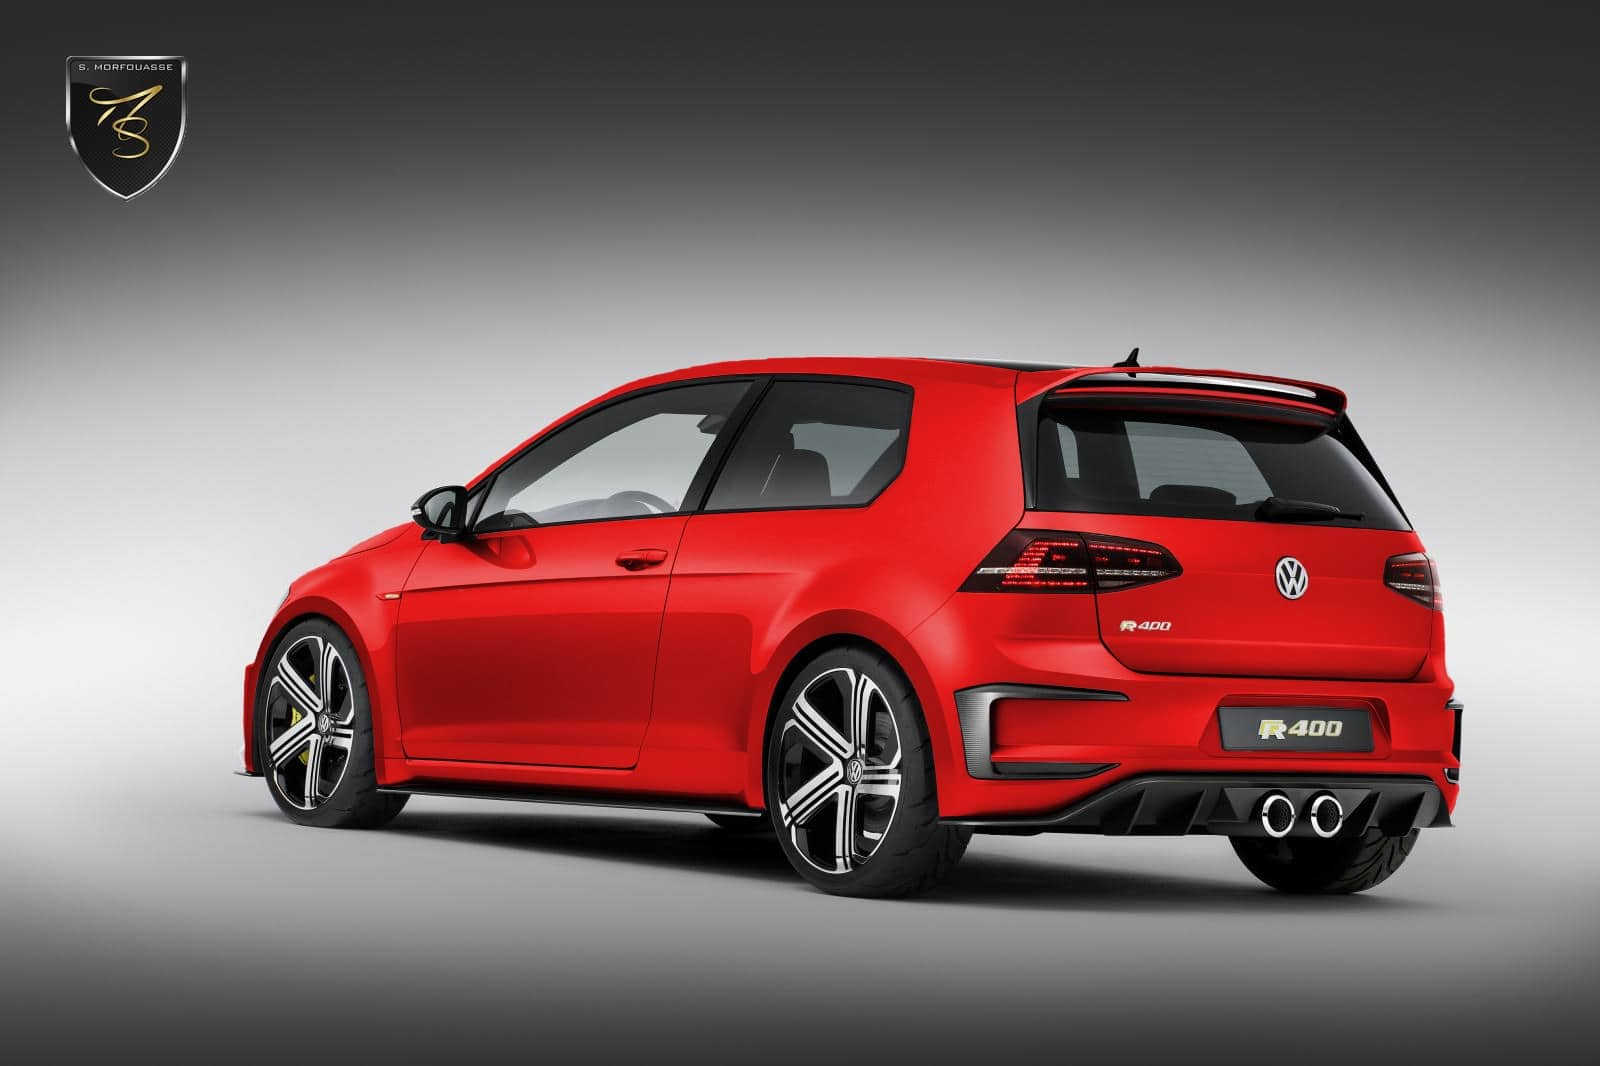 exclusif les tarifs de la vw golf r400 r v l s. Black Bedroom Furniture Sets. Home Design Ideas